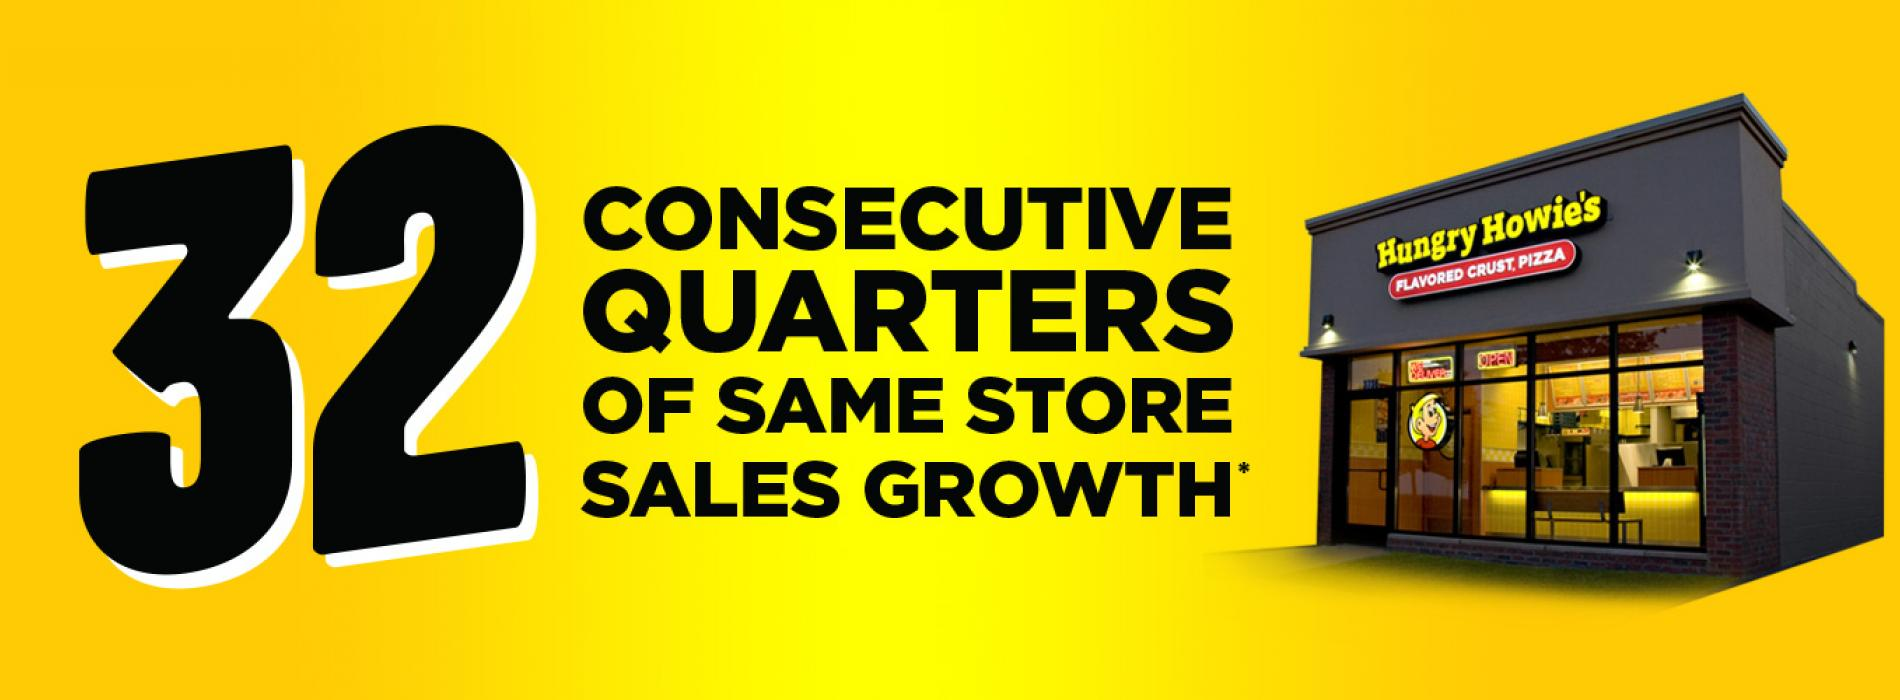 32 Consecutive Quarters of Sales Growth